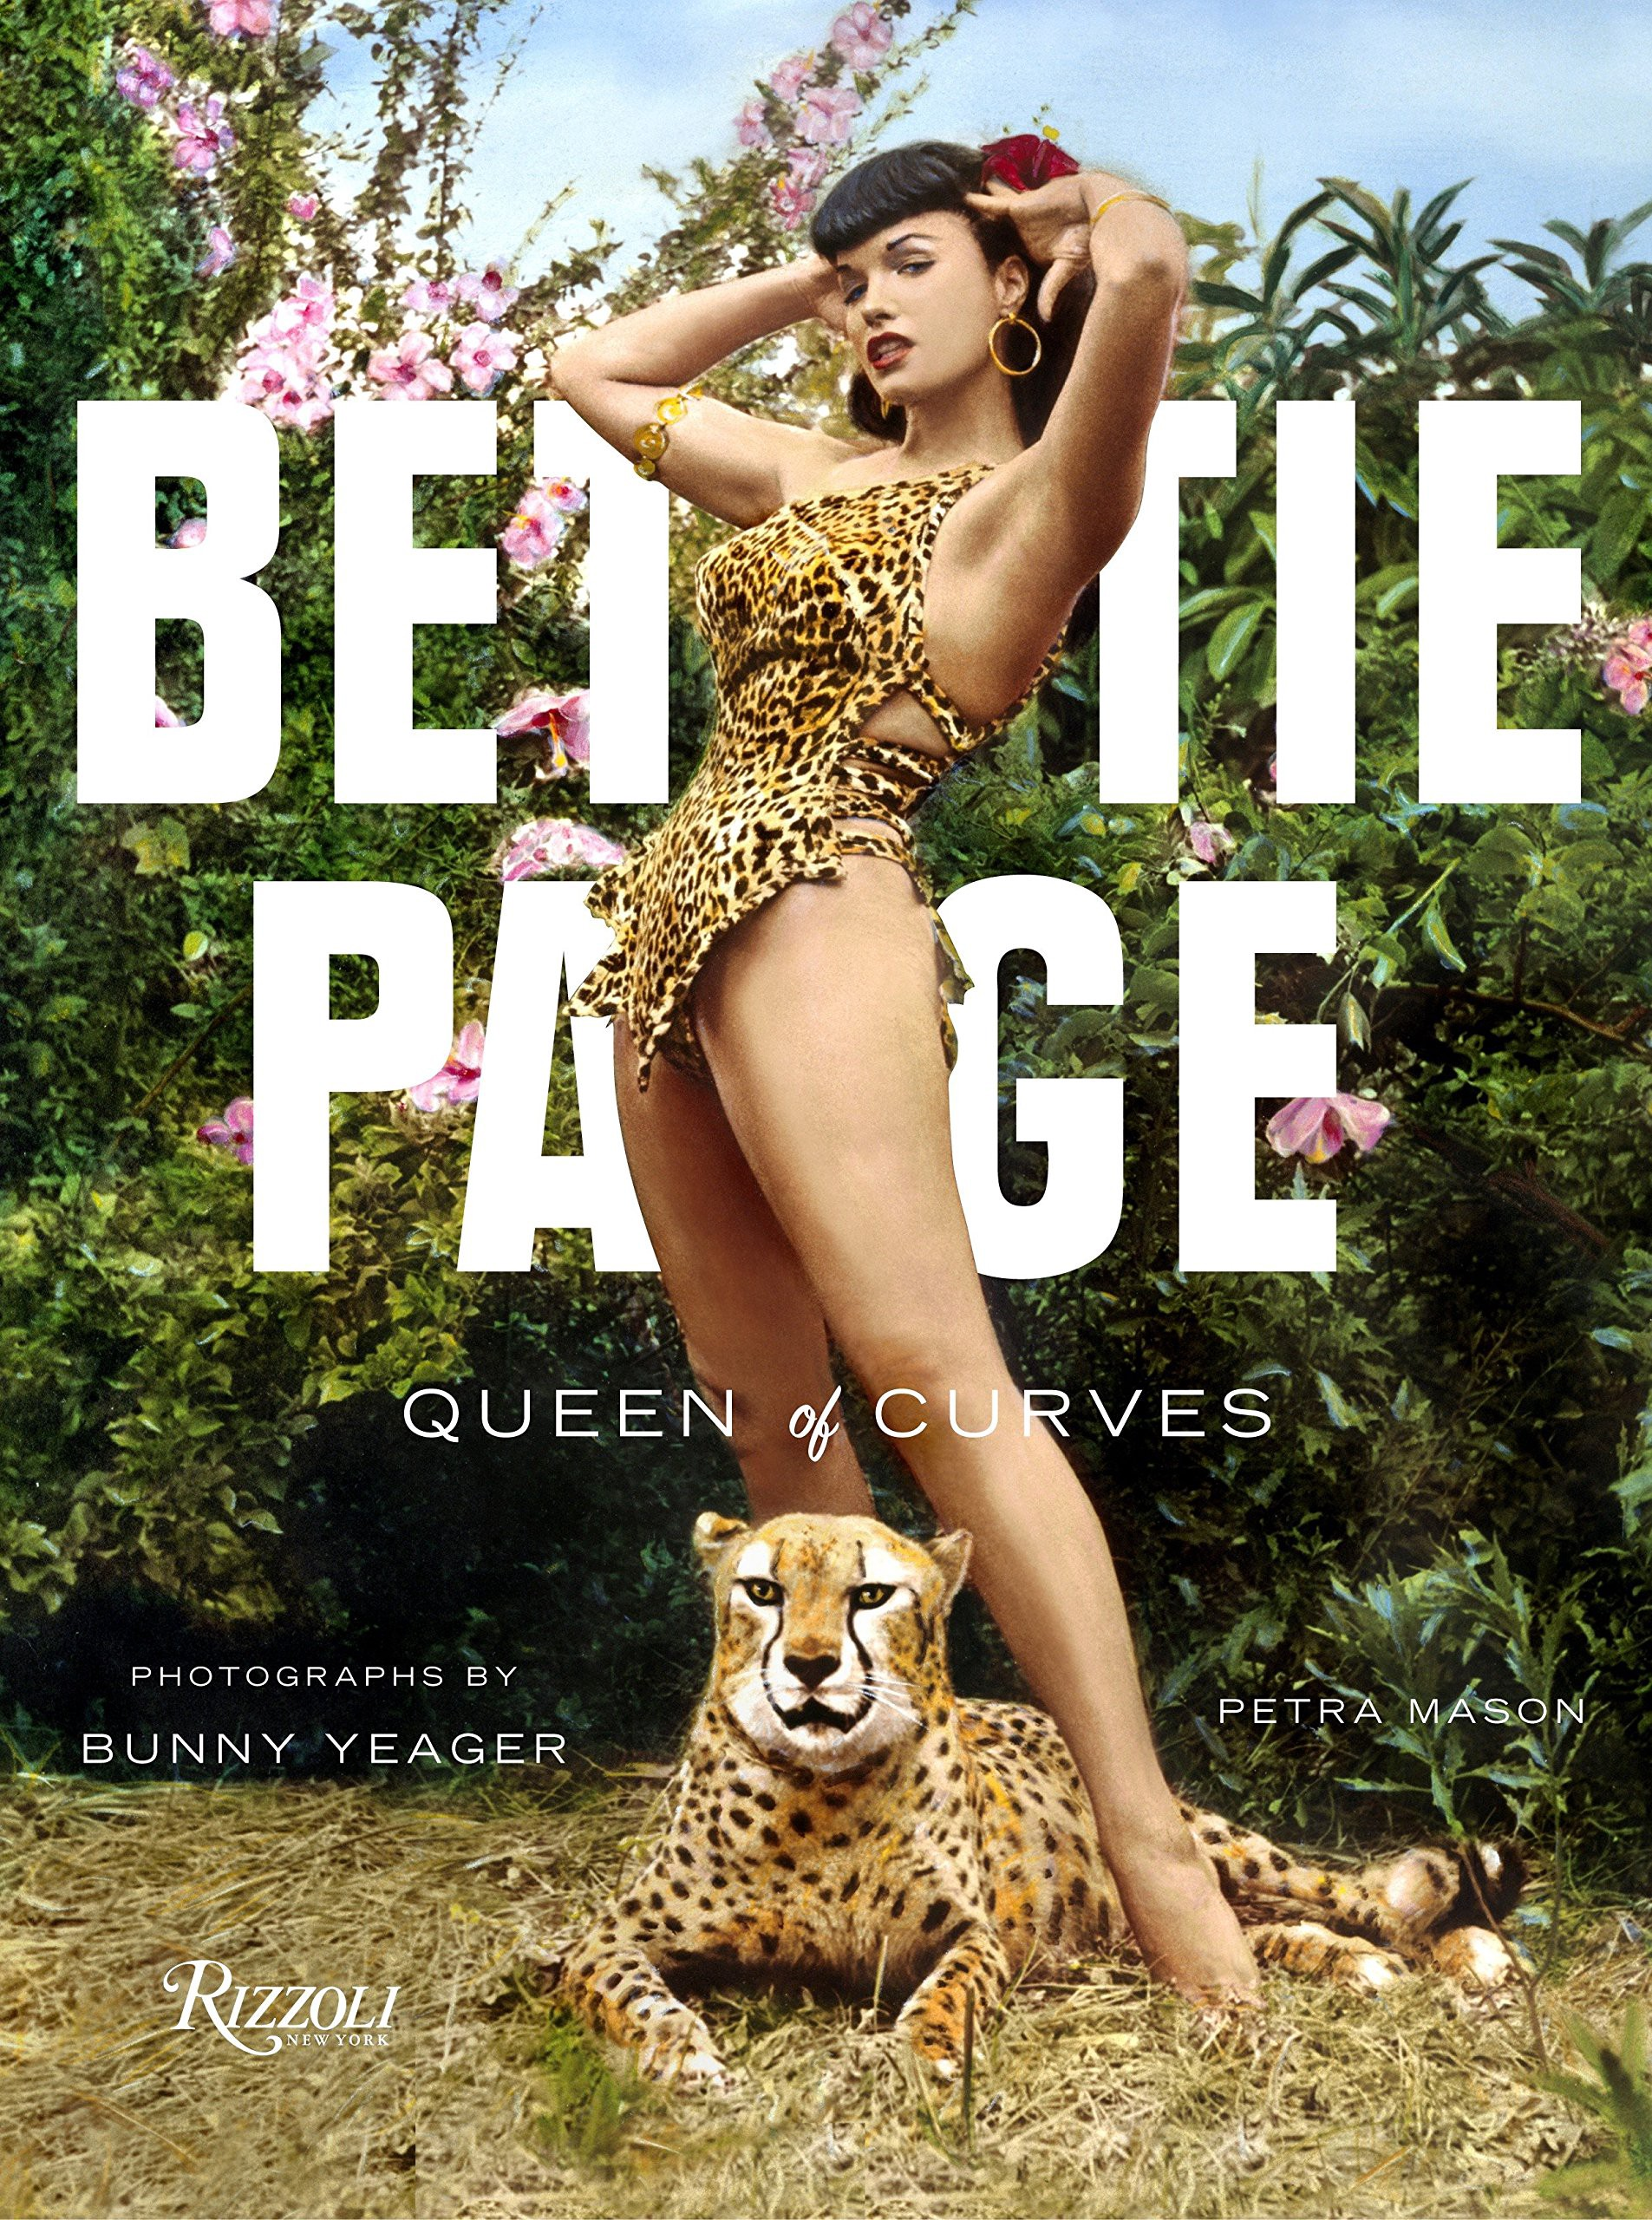 Book cover of Bettie Page: Queen of Curves that shows her posing in her leopard print swimsuit while standing over a cheetah